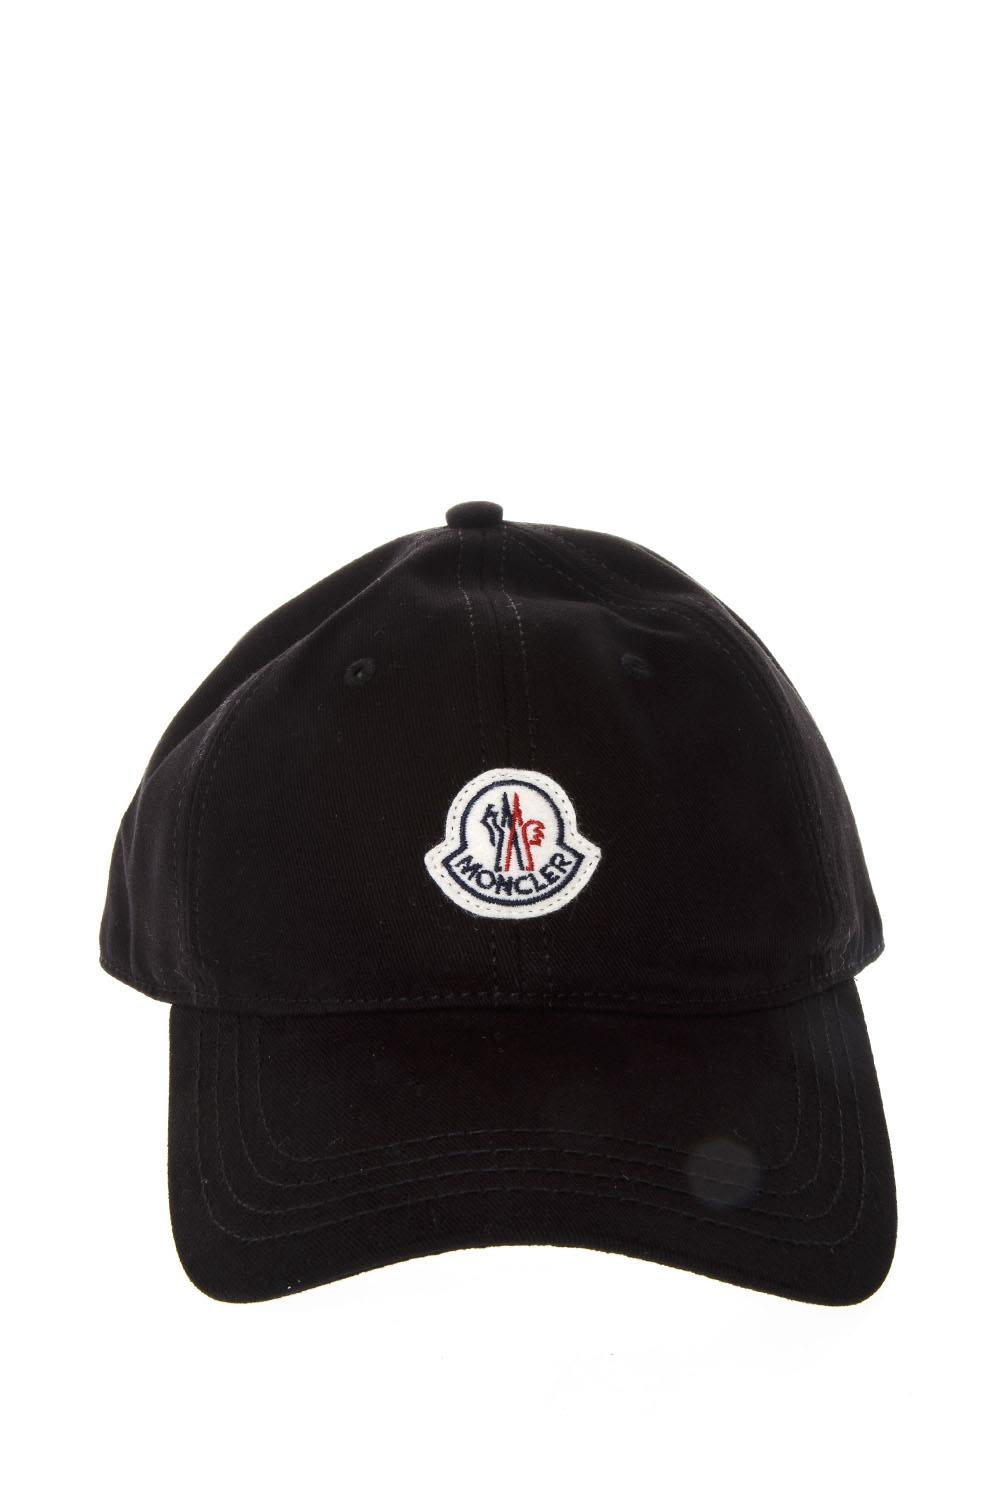 Moncler Black Baseball Hat With Logo Patch